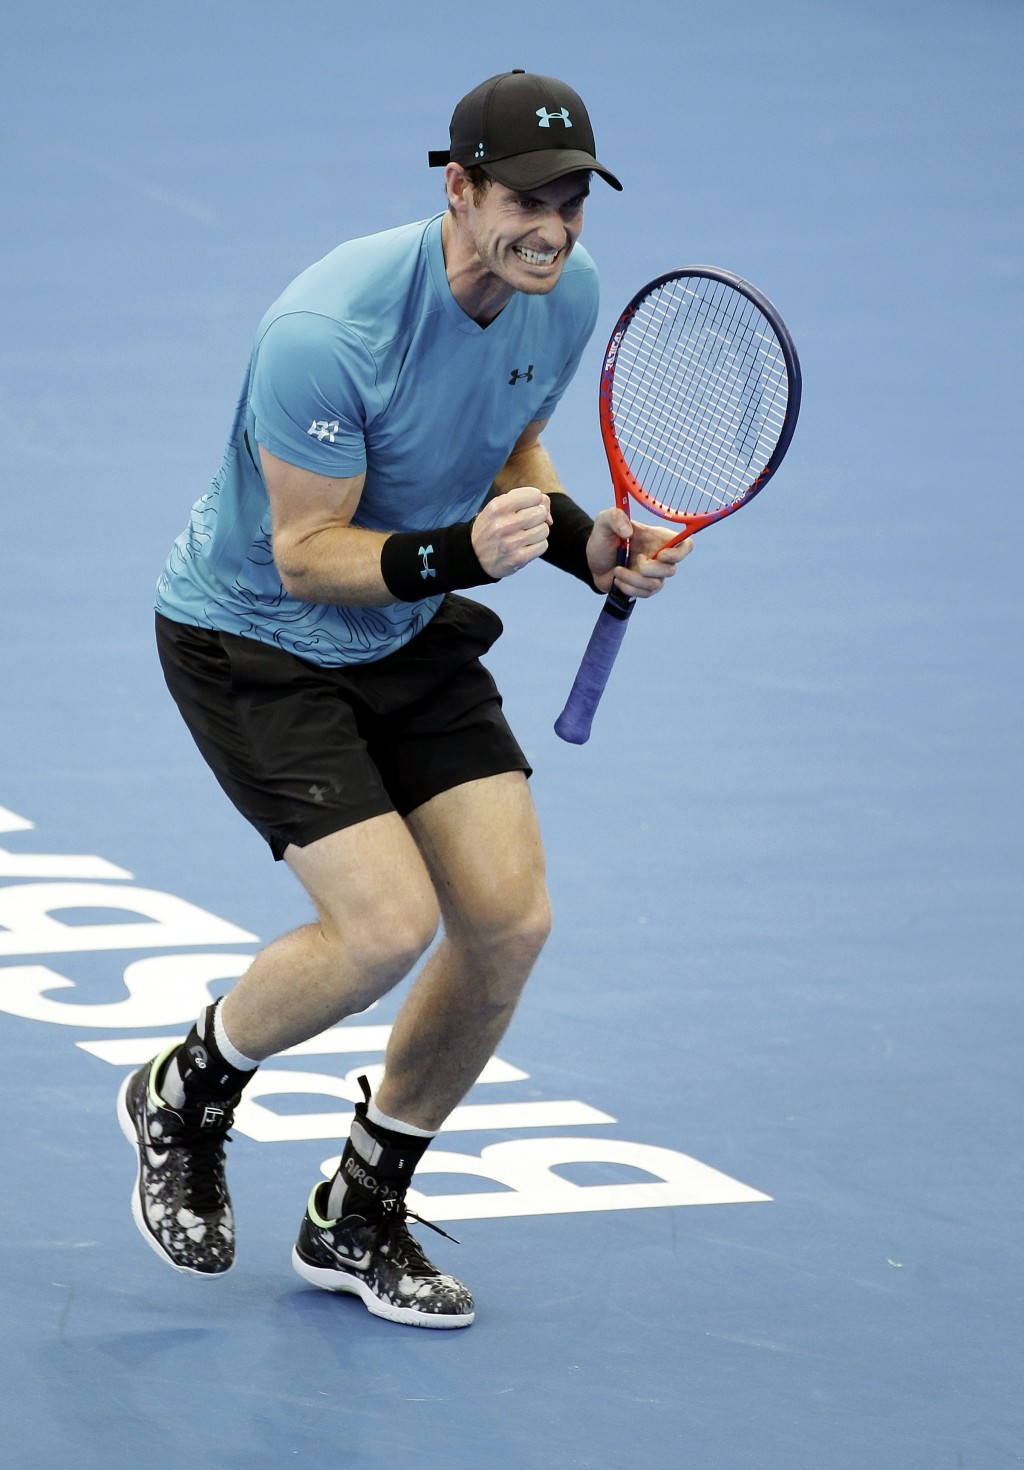 Andy Murray of Britain reacts after winning his match against James Duckworth of Australia at the Brisbane International tennis tournament in Brisbane